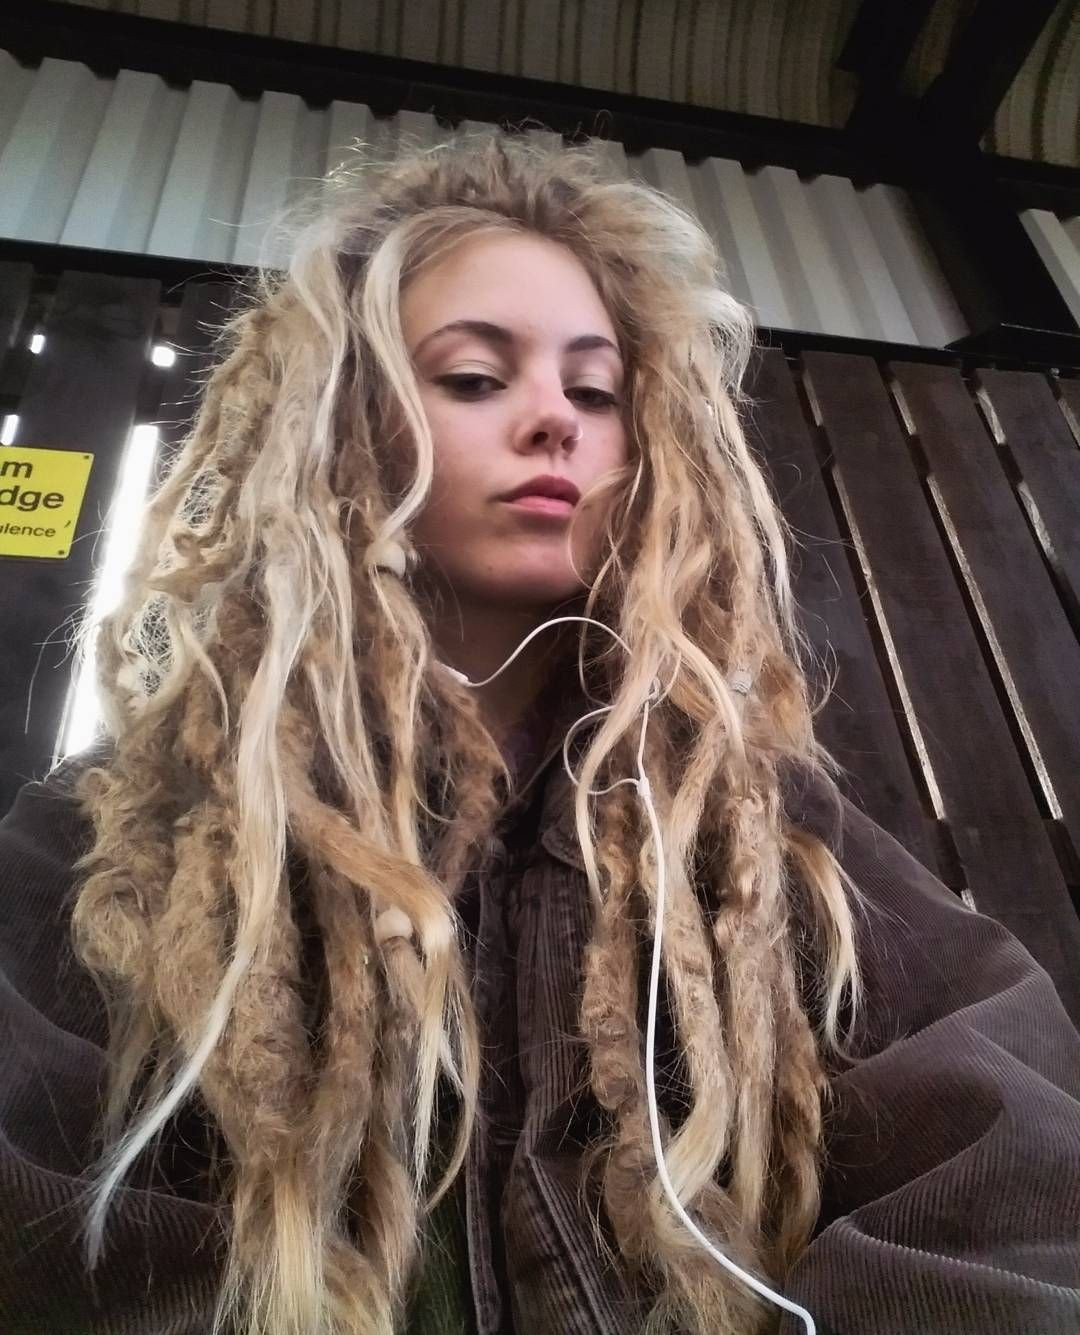 White Girl Dread Hairstyles  The dreads have a mind of their own